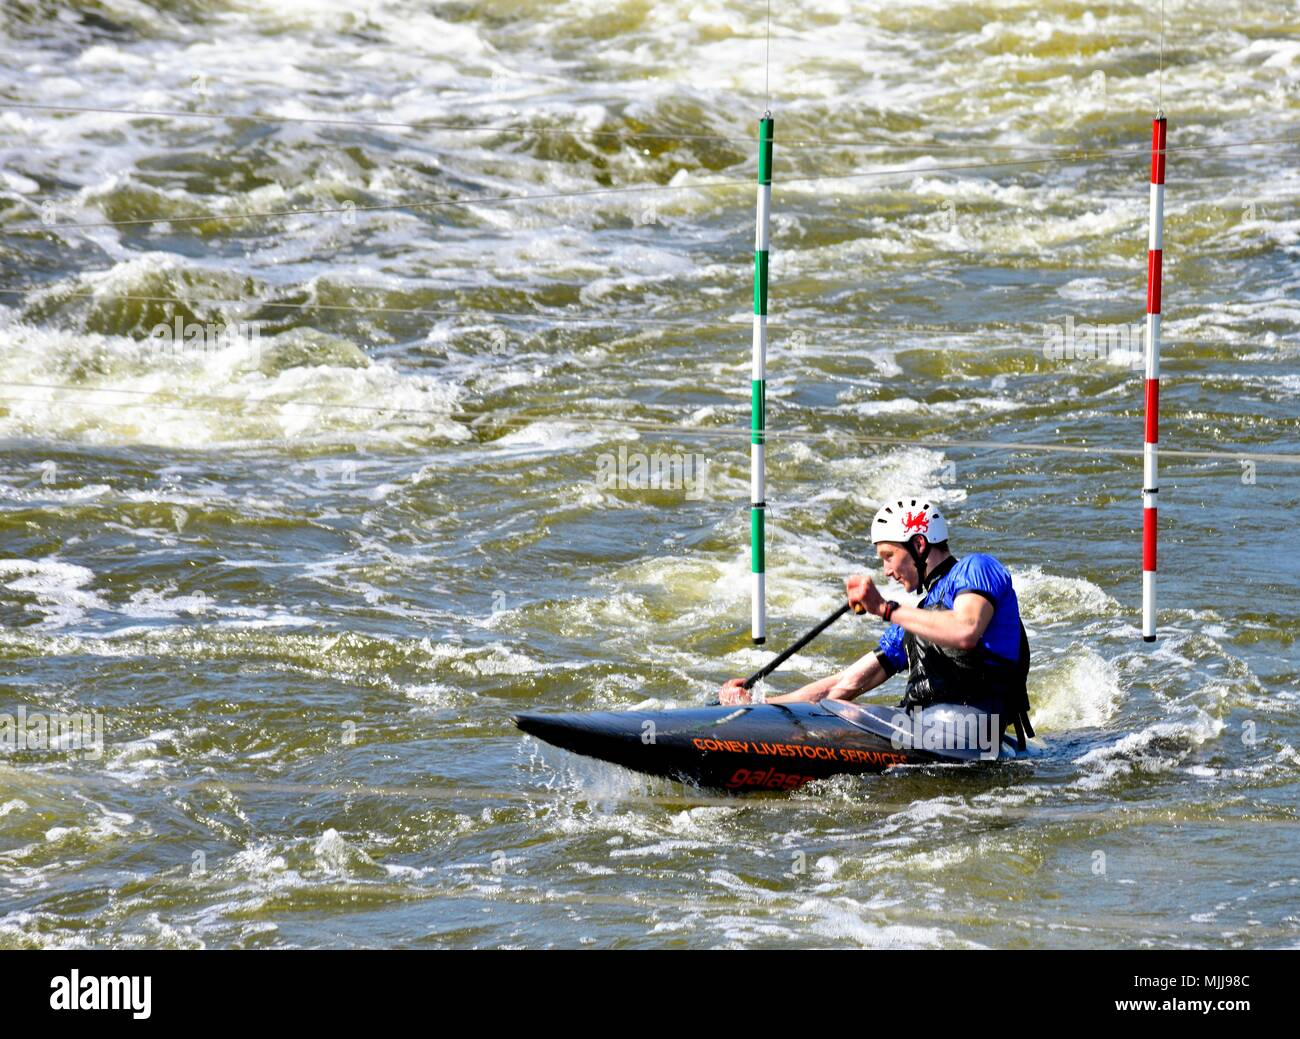 White water rafting  National Watersports Centre Holme Pierrepont Nottingham England UK - Stock Image